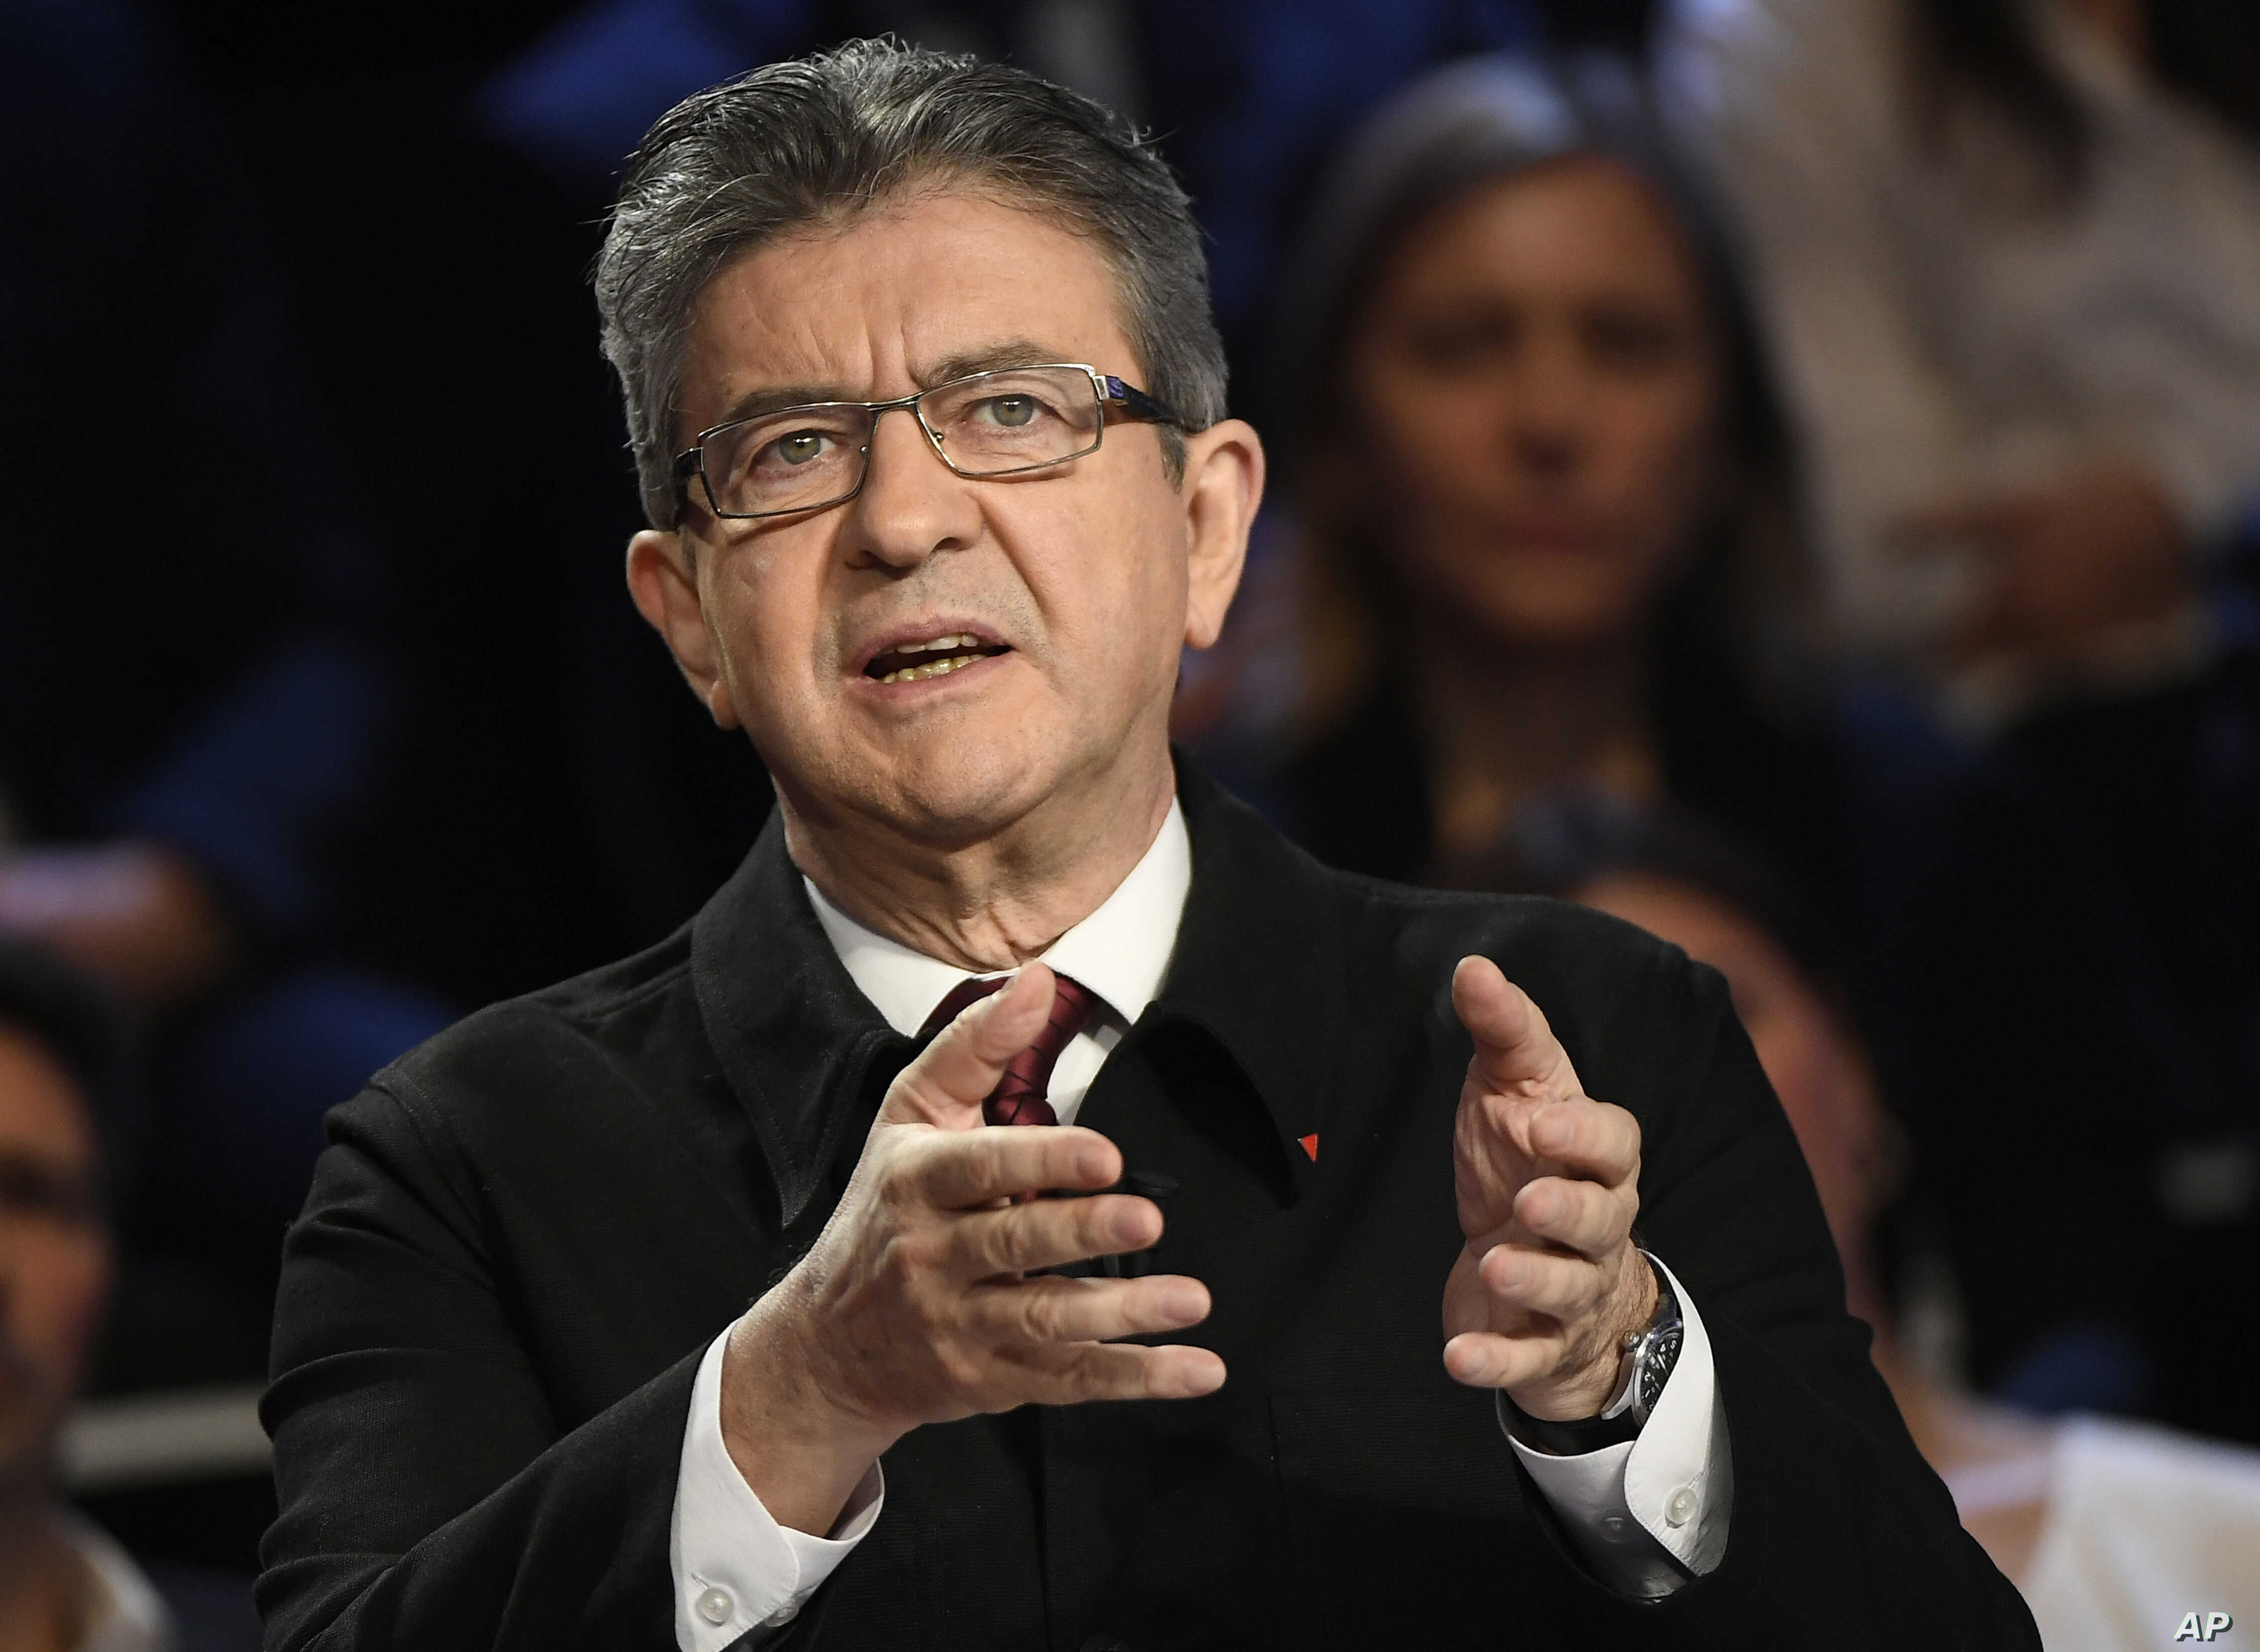 Far-left presidential candidate for the presidential election Jean-Luc Melenchon attends a television debate at French private TV channels BFM TV and CNews, in La Plaine-Saint-Denis, outside Paris, April 4, 2017.